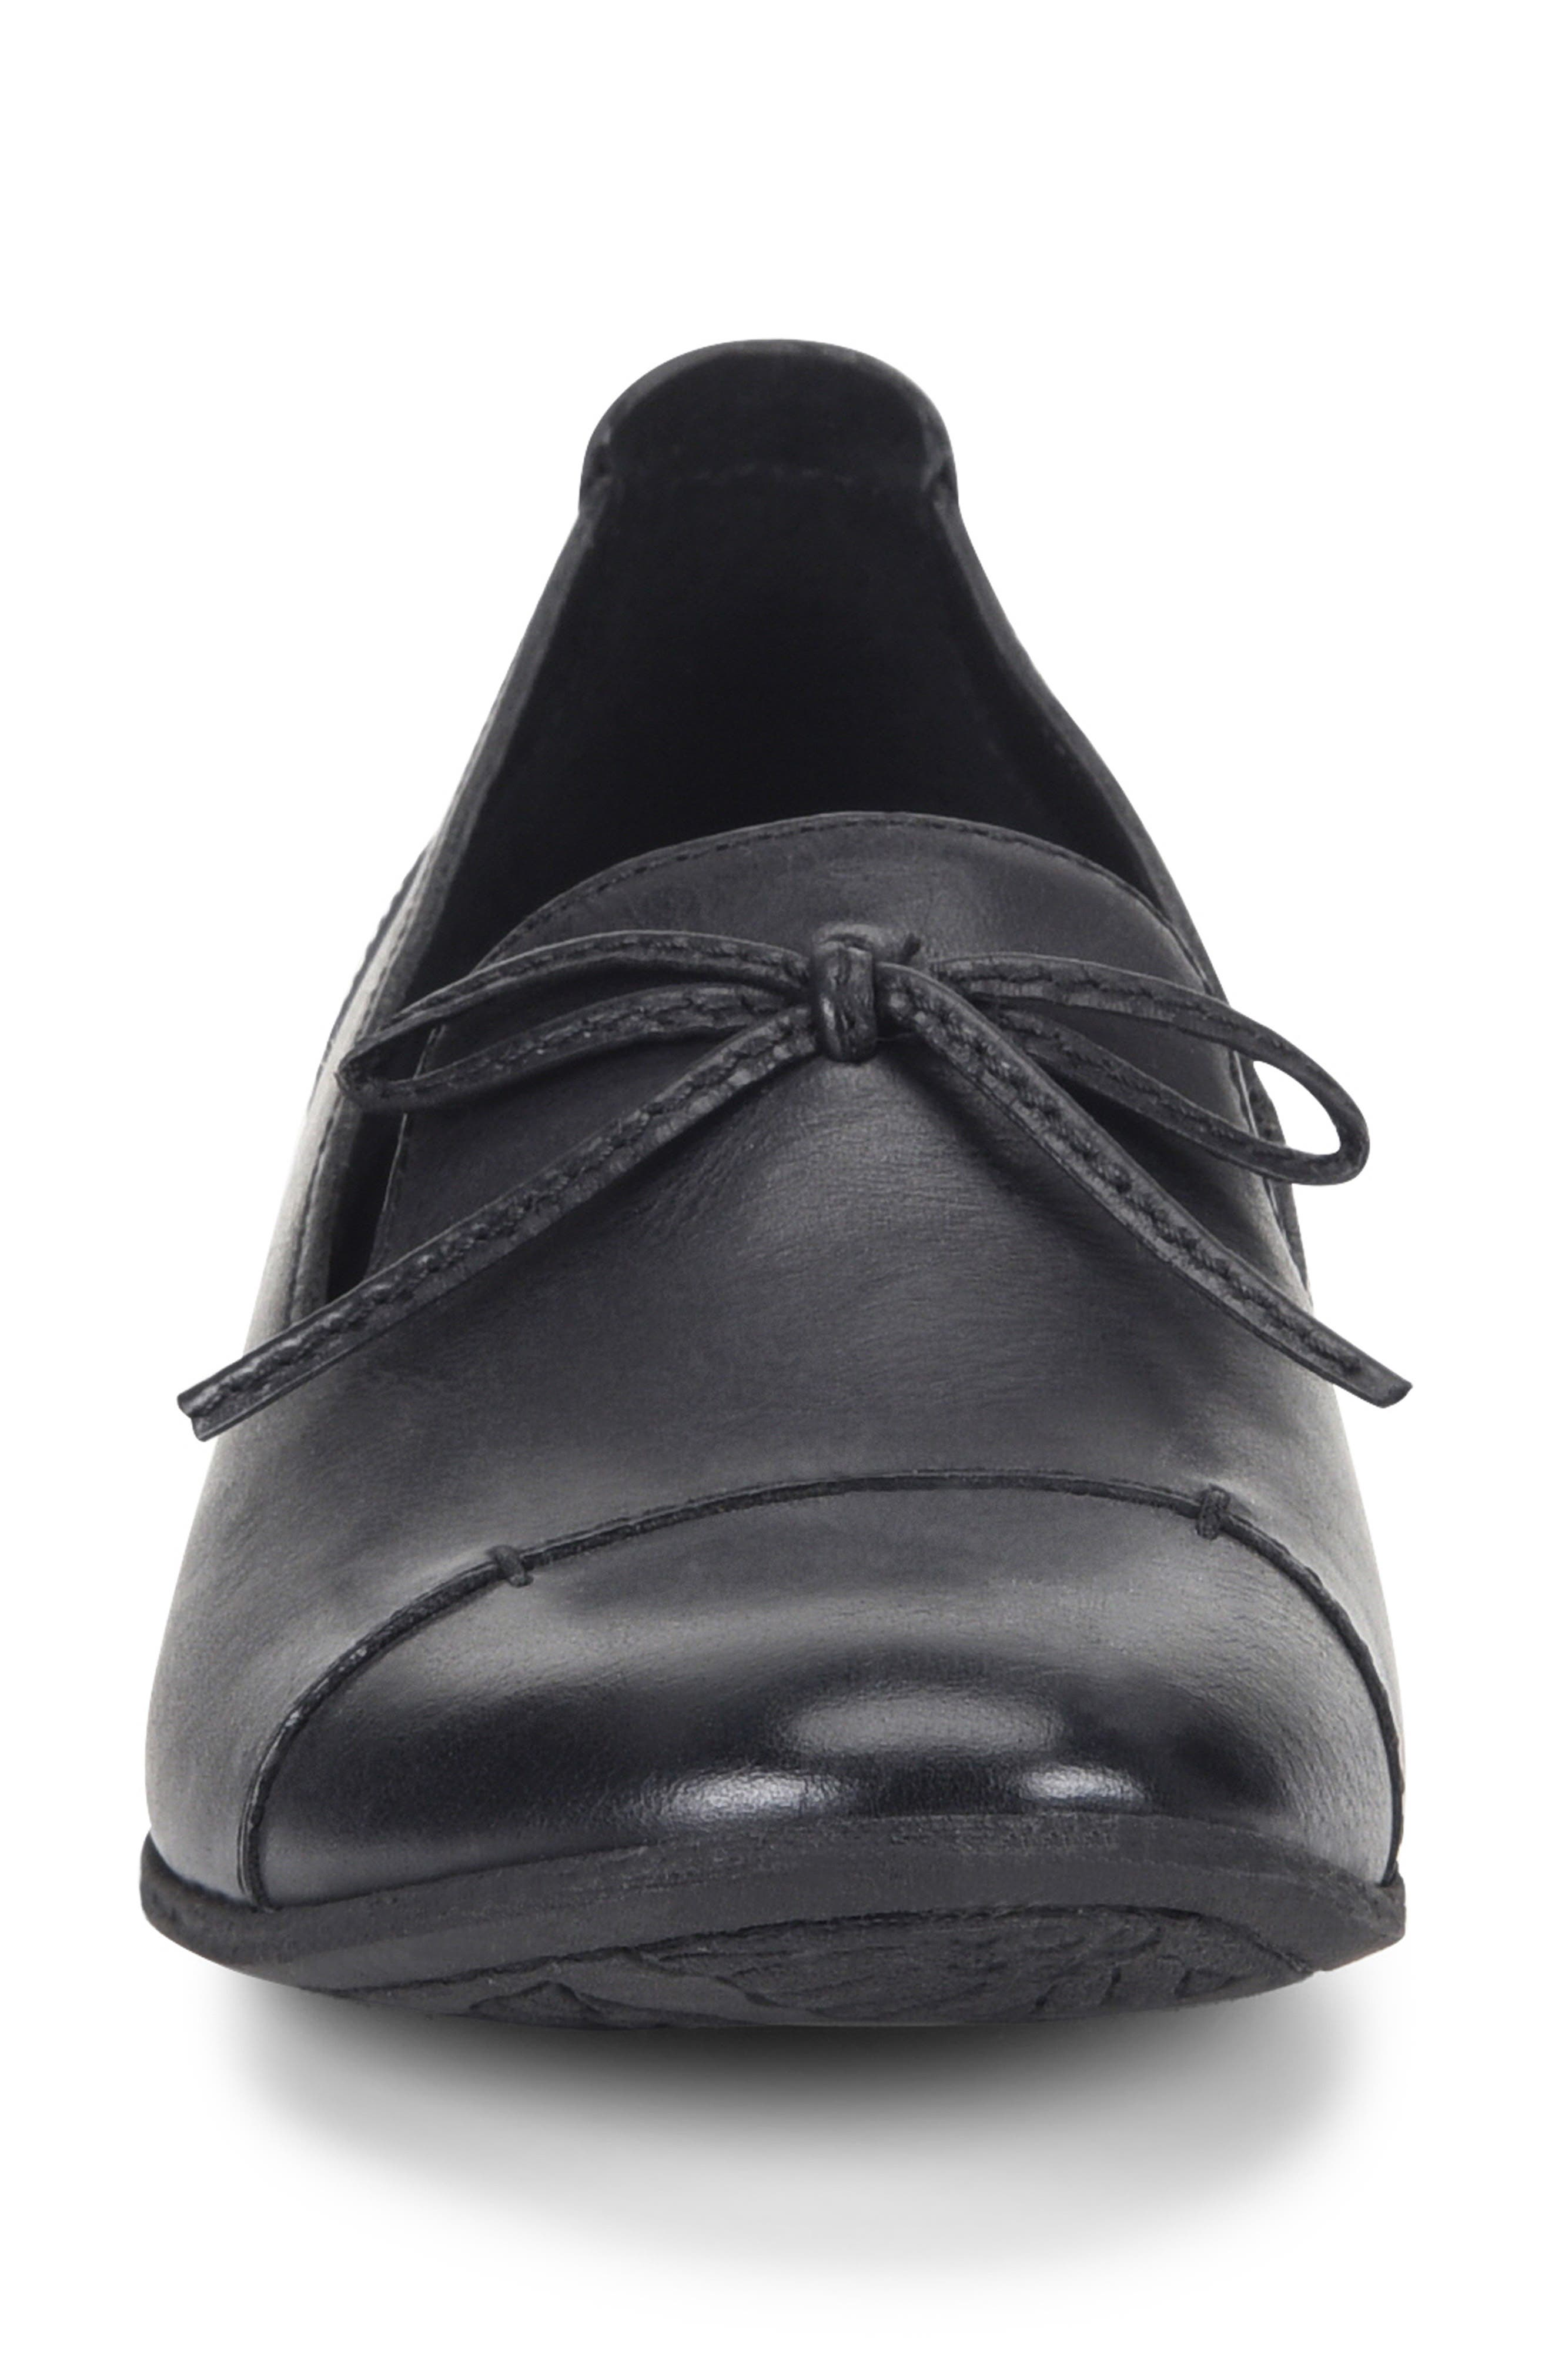 Gallatin Loafer,                             Alternate thumbnail 4, color,                             BLACK LEATHER